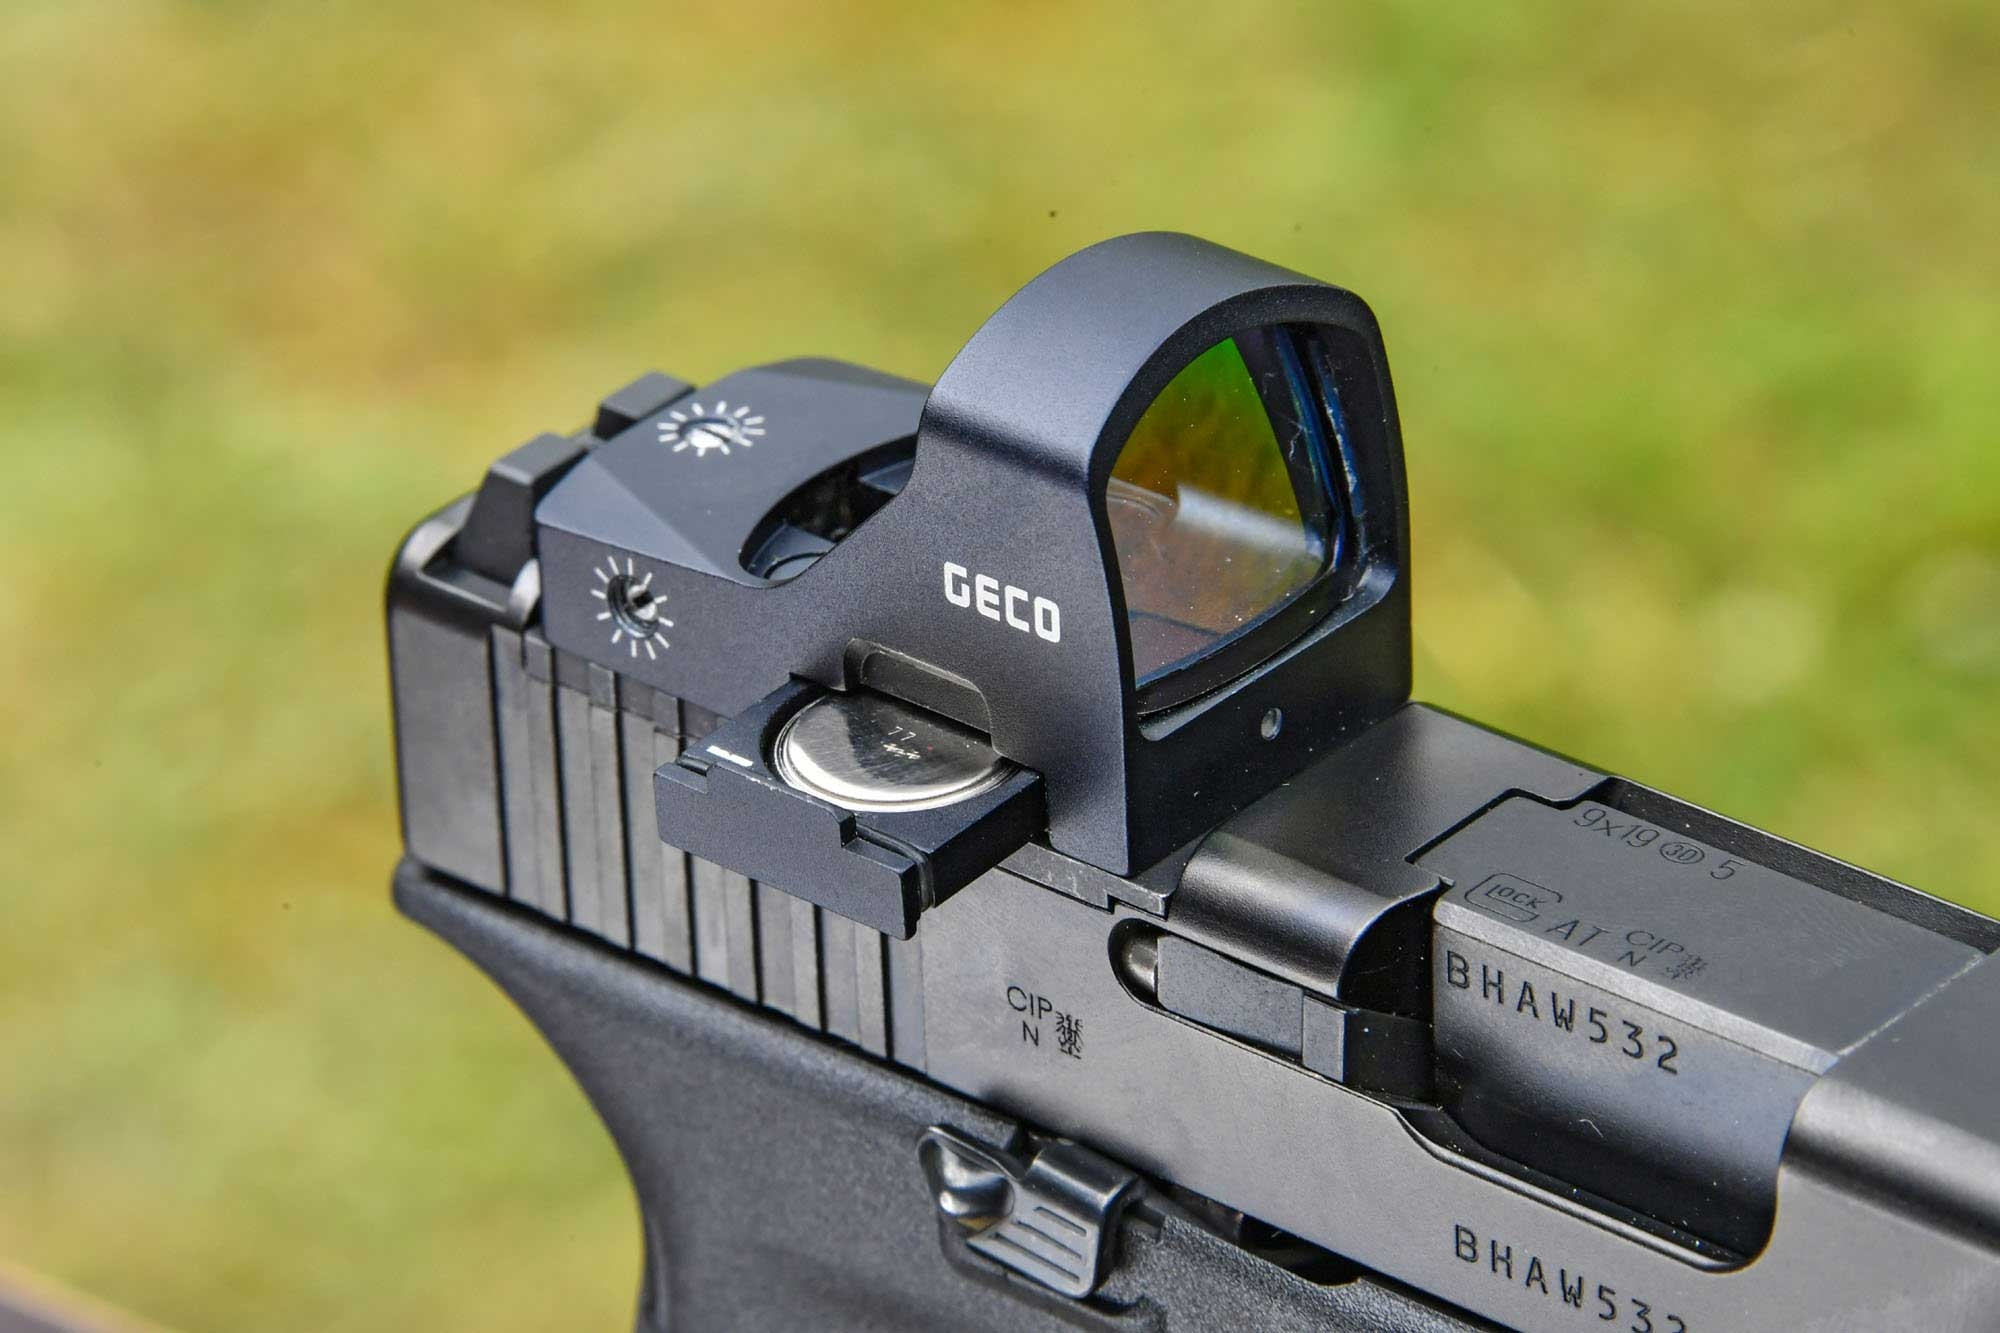 Herausgeschobenes Batteriefach des GECO Open Red Dot Sights.